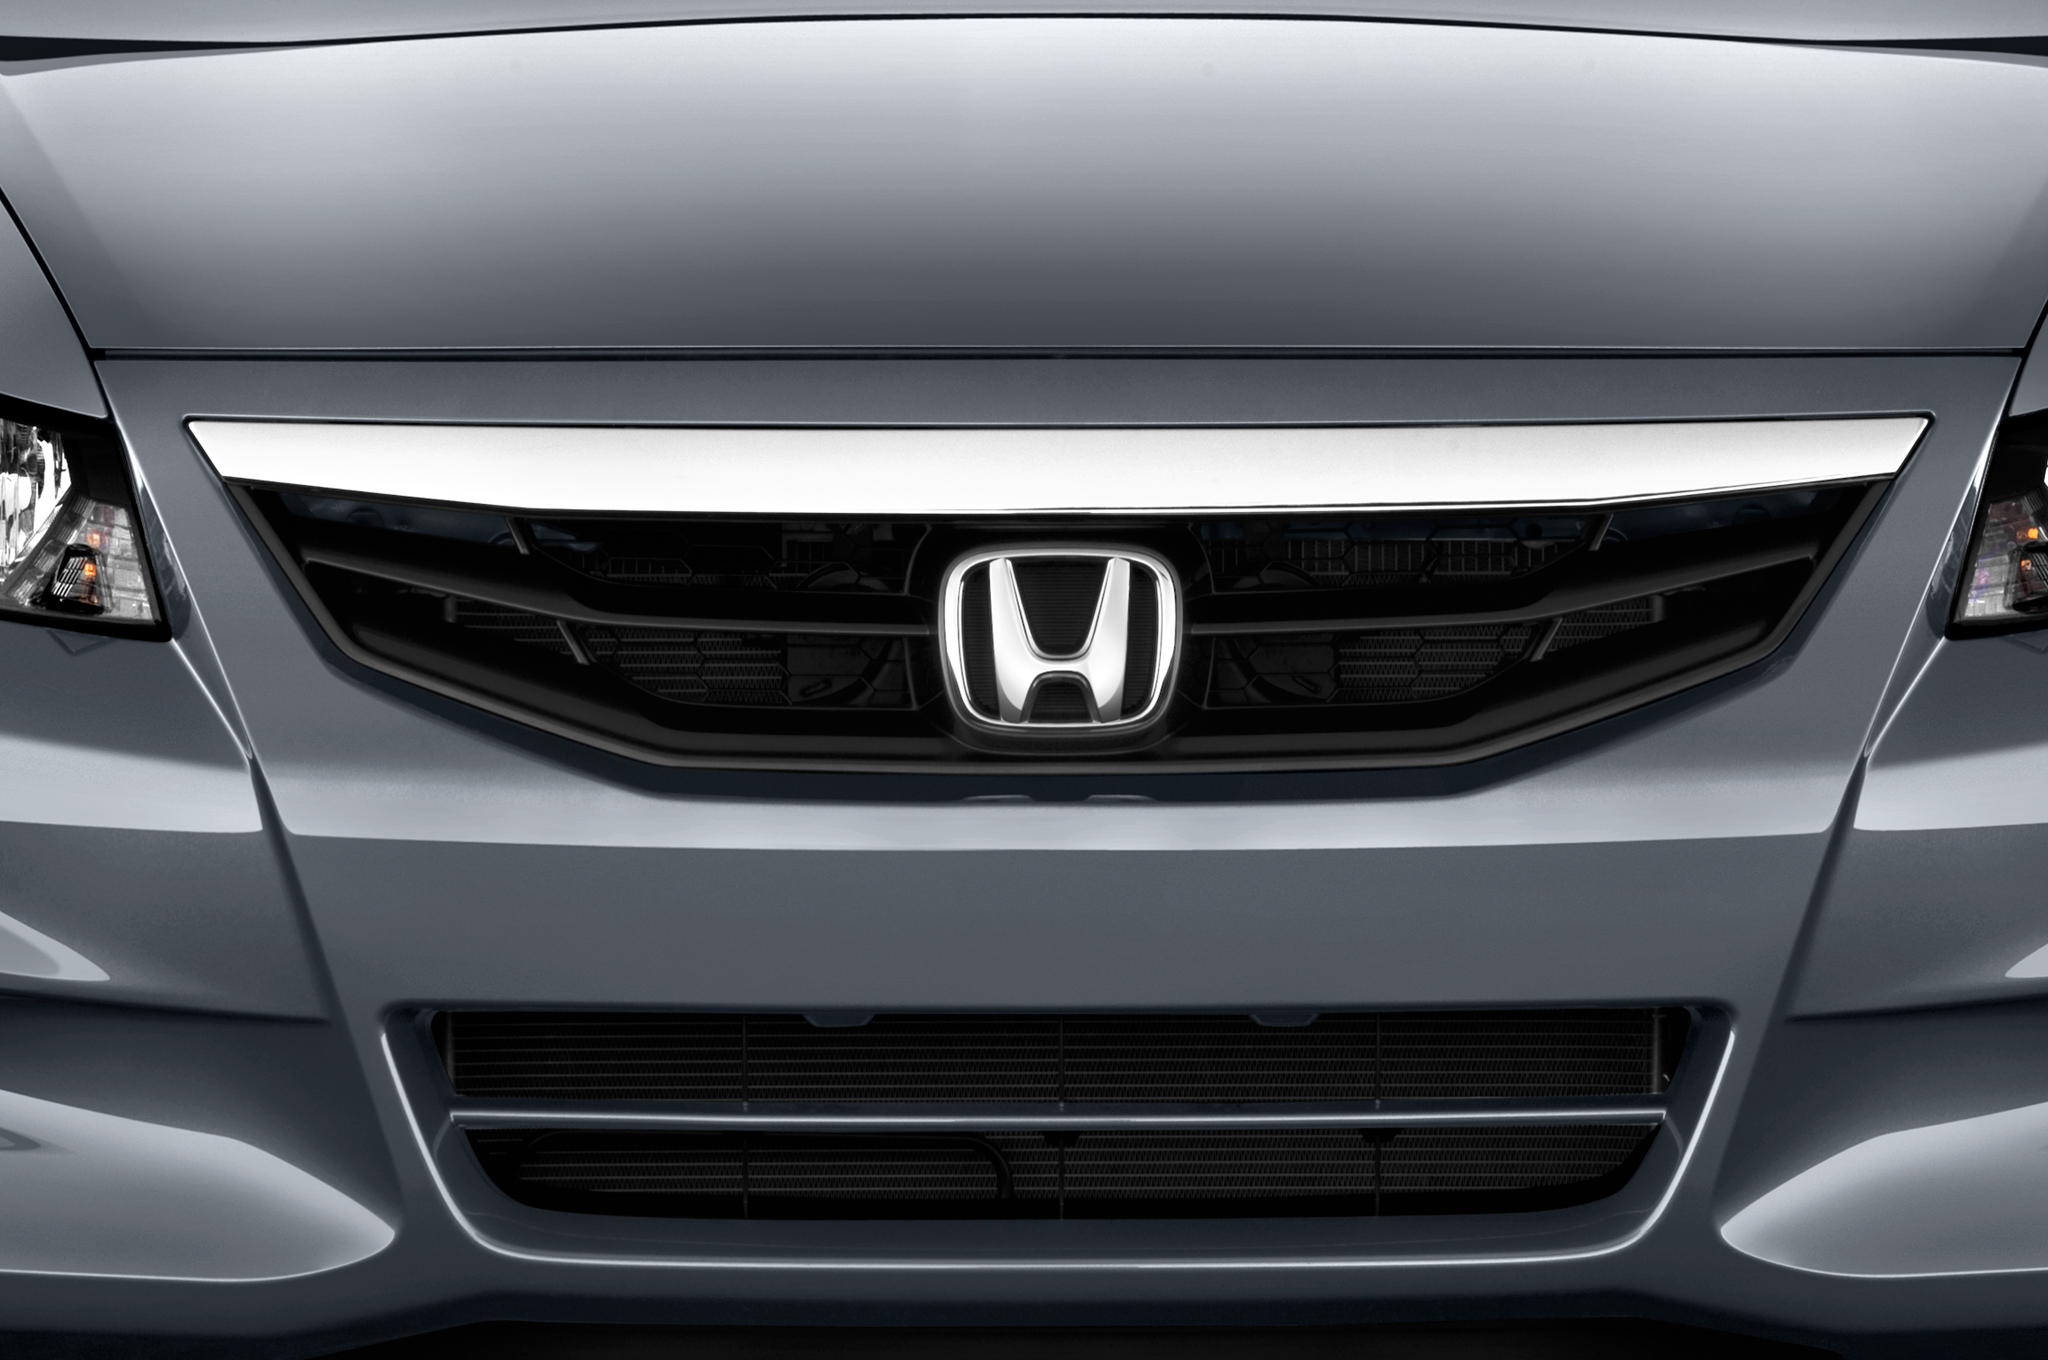 Does The Honda Concept C Give Sneak Peek Of Future Accord 2012 Coupe 59 96